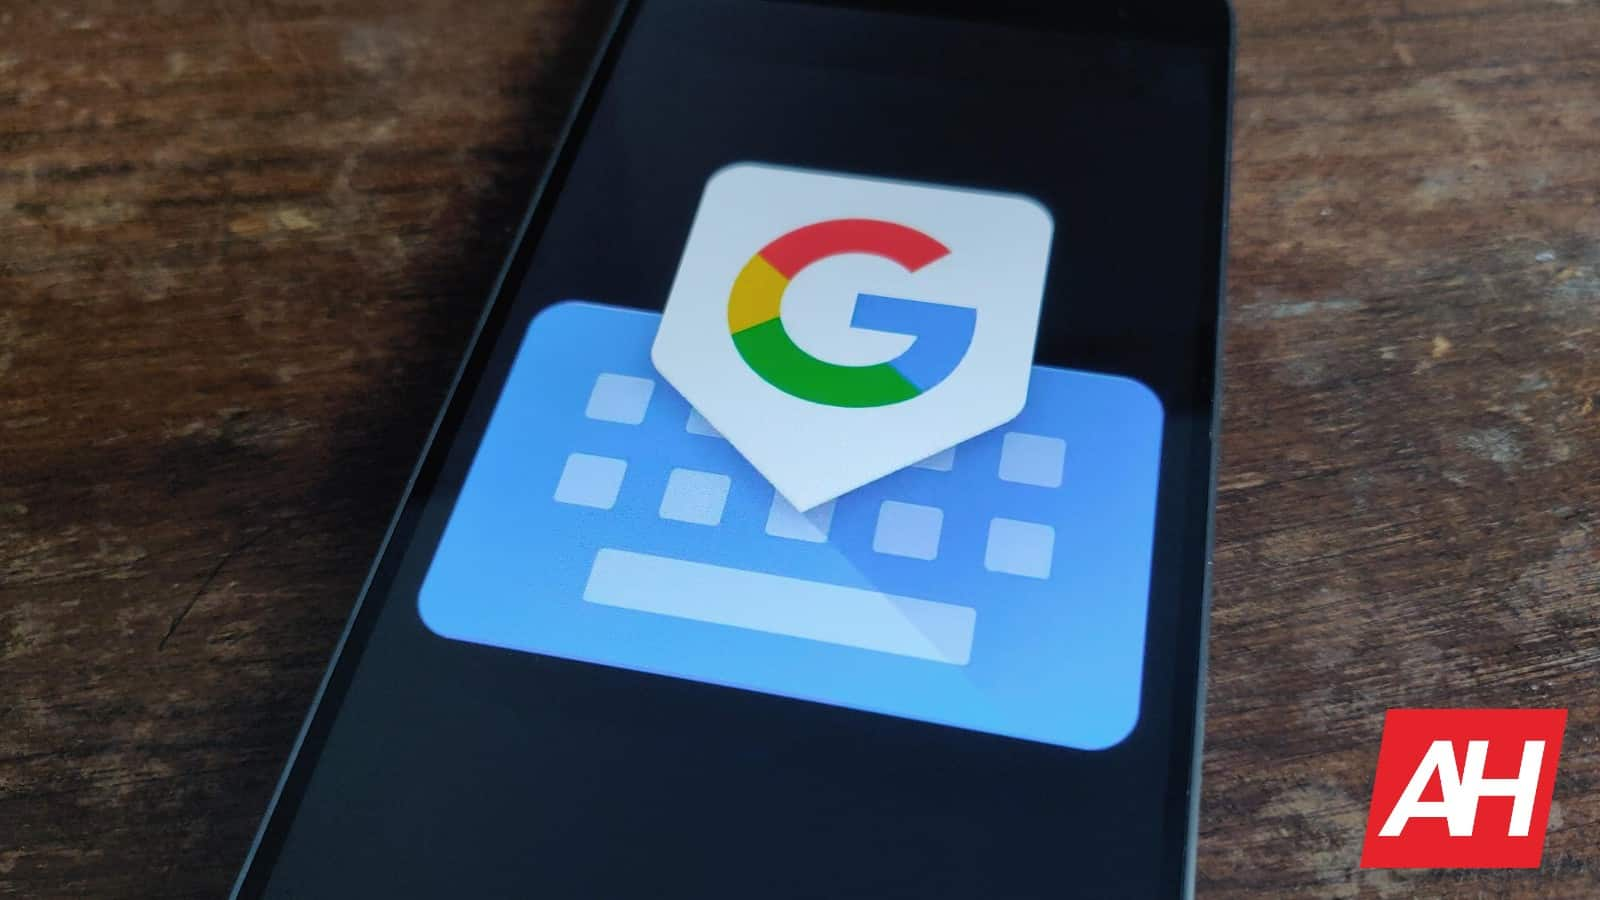 Check Out Gboard's New Google Assistant-Based Voice Typing Feature